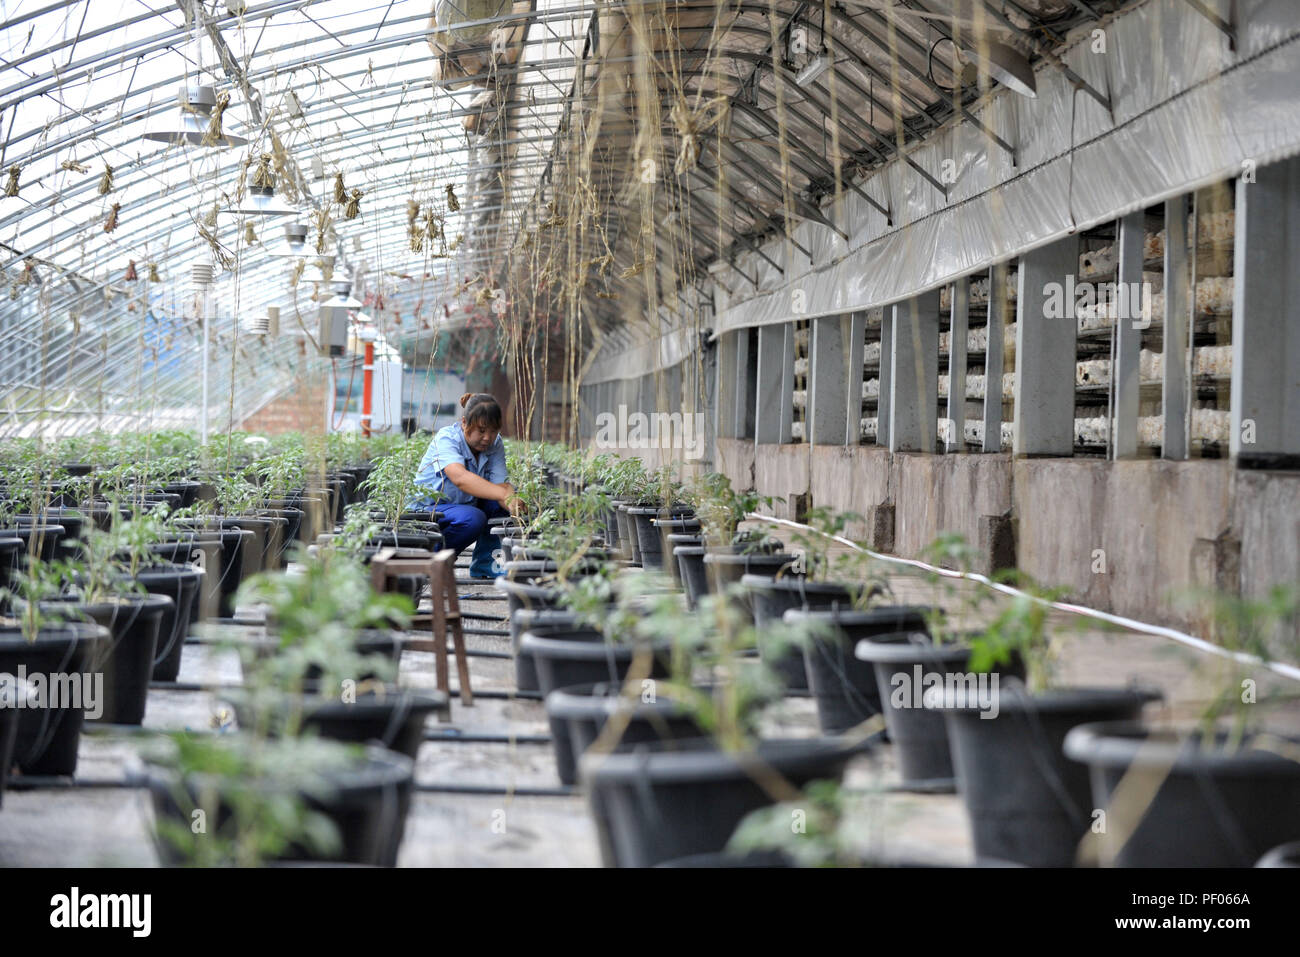 Ningxia, China. 18th August 2018. A farmer works at a tomato photovoltaic greenhouse in Minning Township in Yinchuan, northwest China's Ningxia Hui Autonomous Region, Aug. 17, 2018. Minning has converted from a town in Gobi desert to a modernized ecological relocation demonstration town over the past 21 years via a series of cooperation between Ningxia and southeast China's Fujian. Cattle breeding, red raspberry planting, photovoltaic agriculture and export of labor forc Credit: Xinhua/Alamy Live News Credit: Xinhua/Alamy Live News - Stock Image